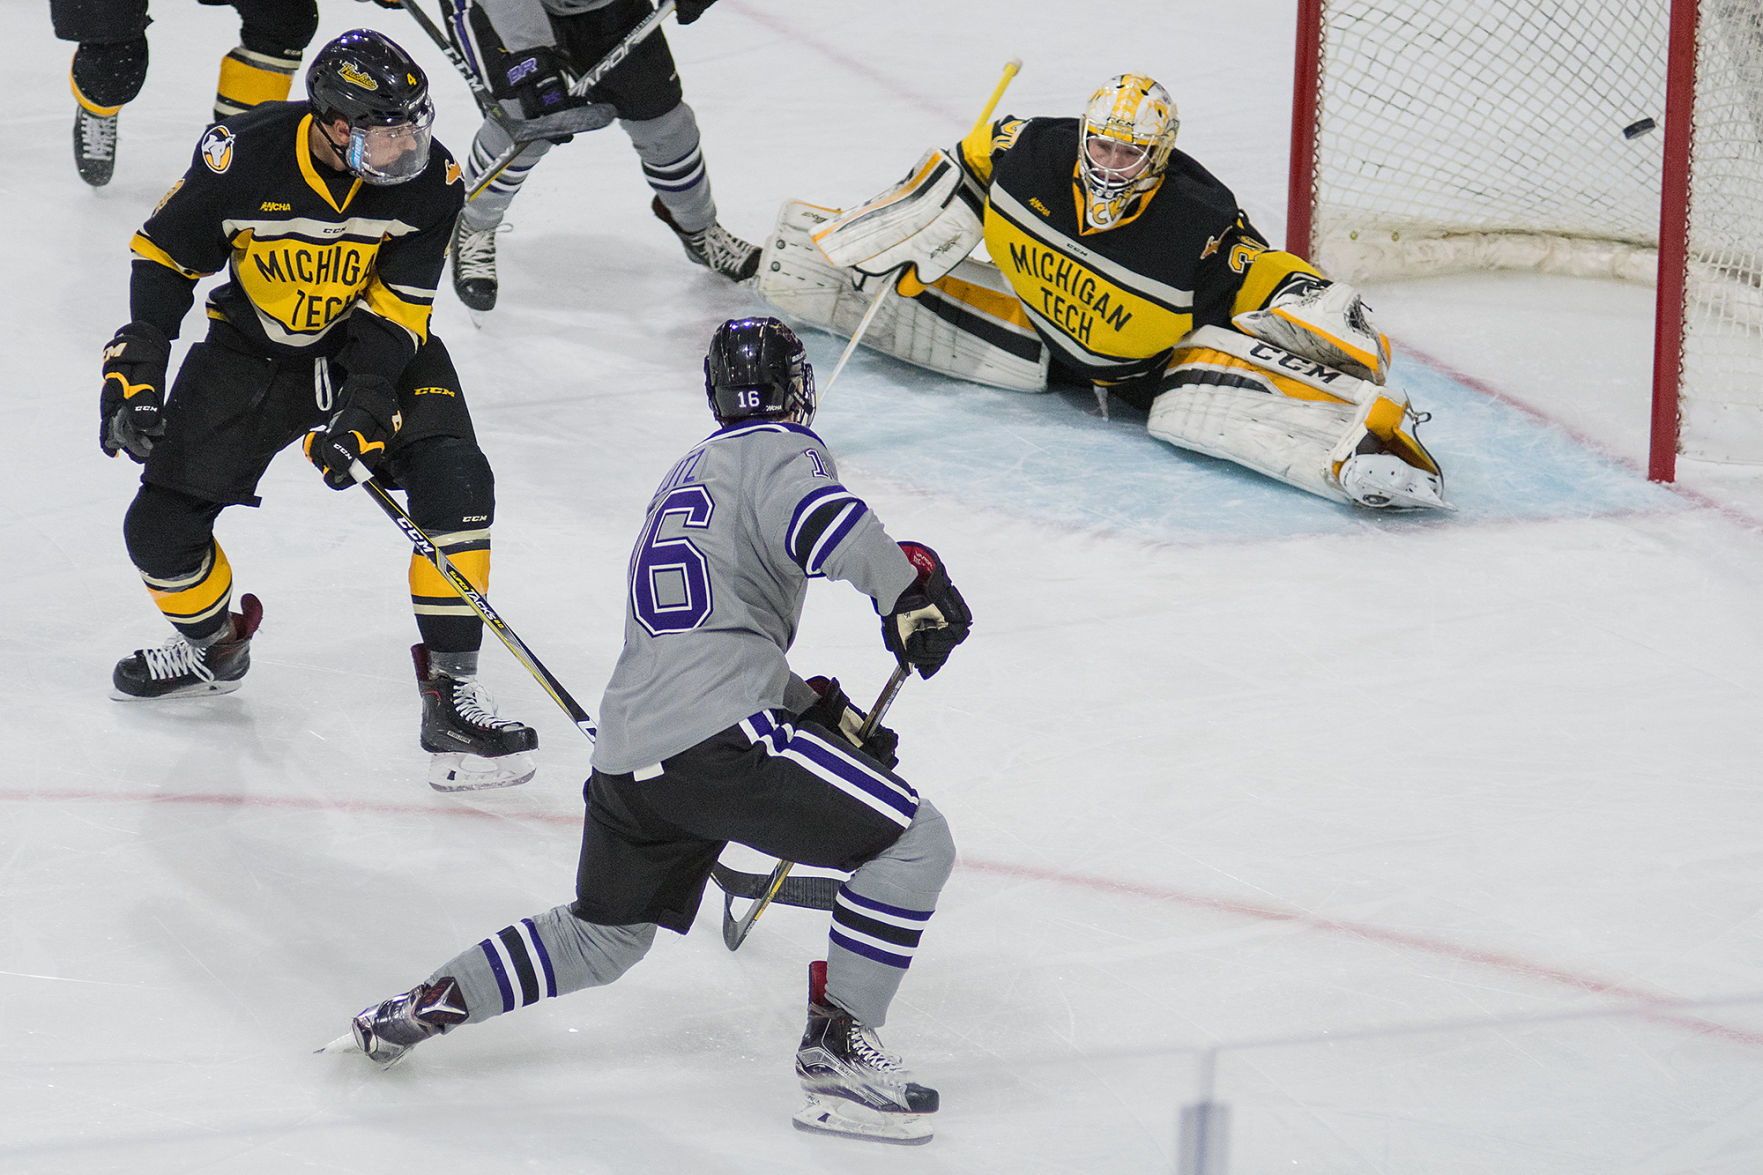 WCHA: Minnesota State Hockey Rookies Know Each Other Well